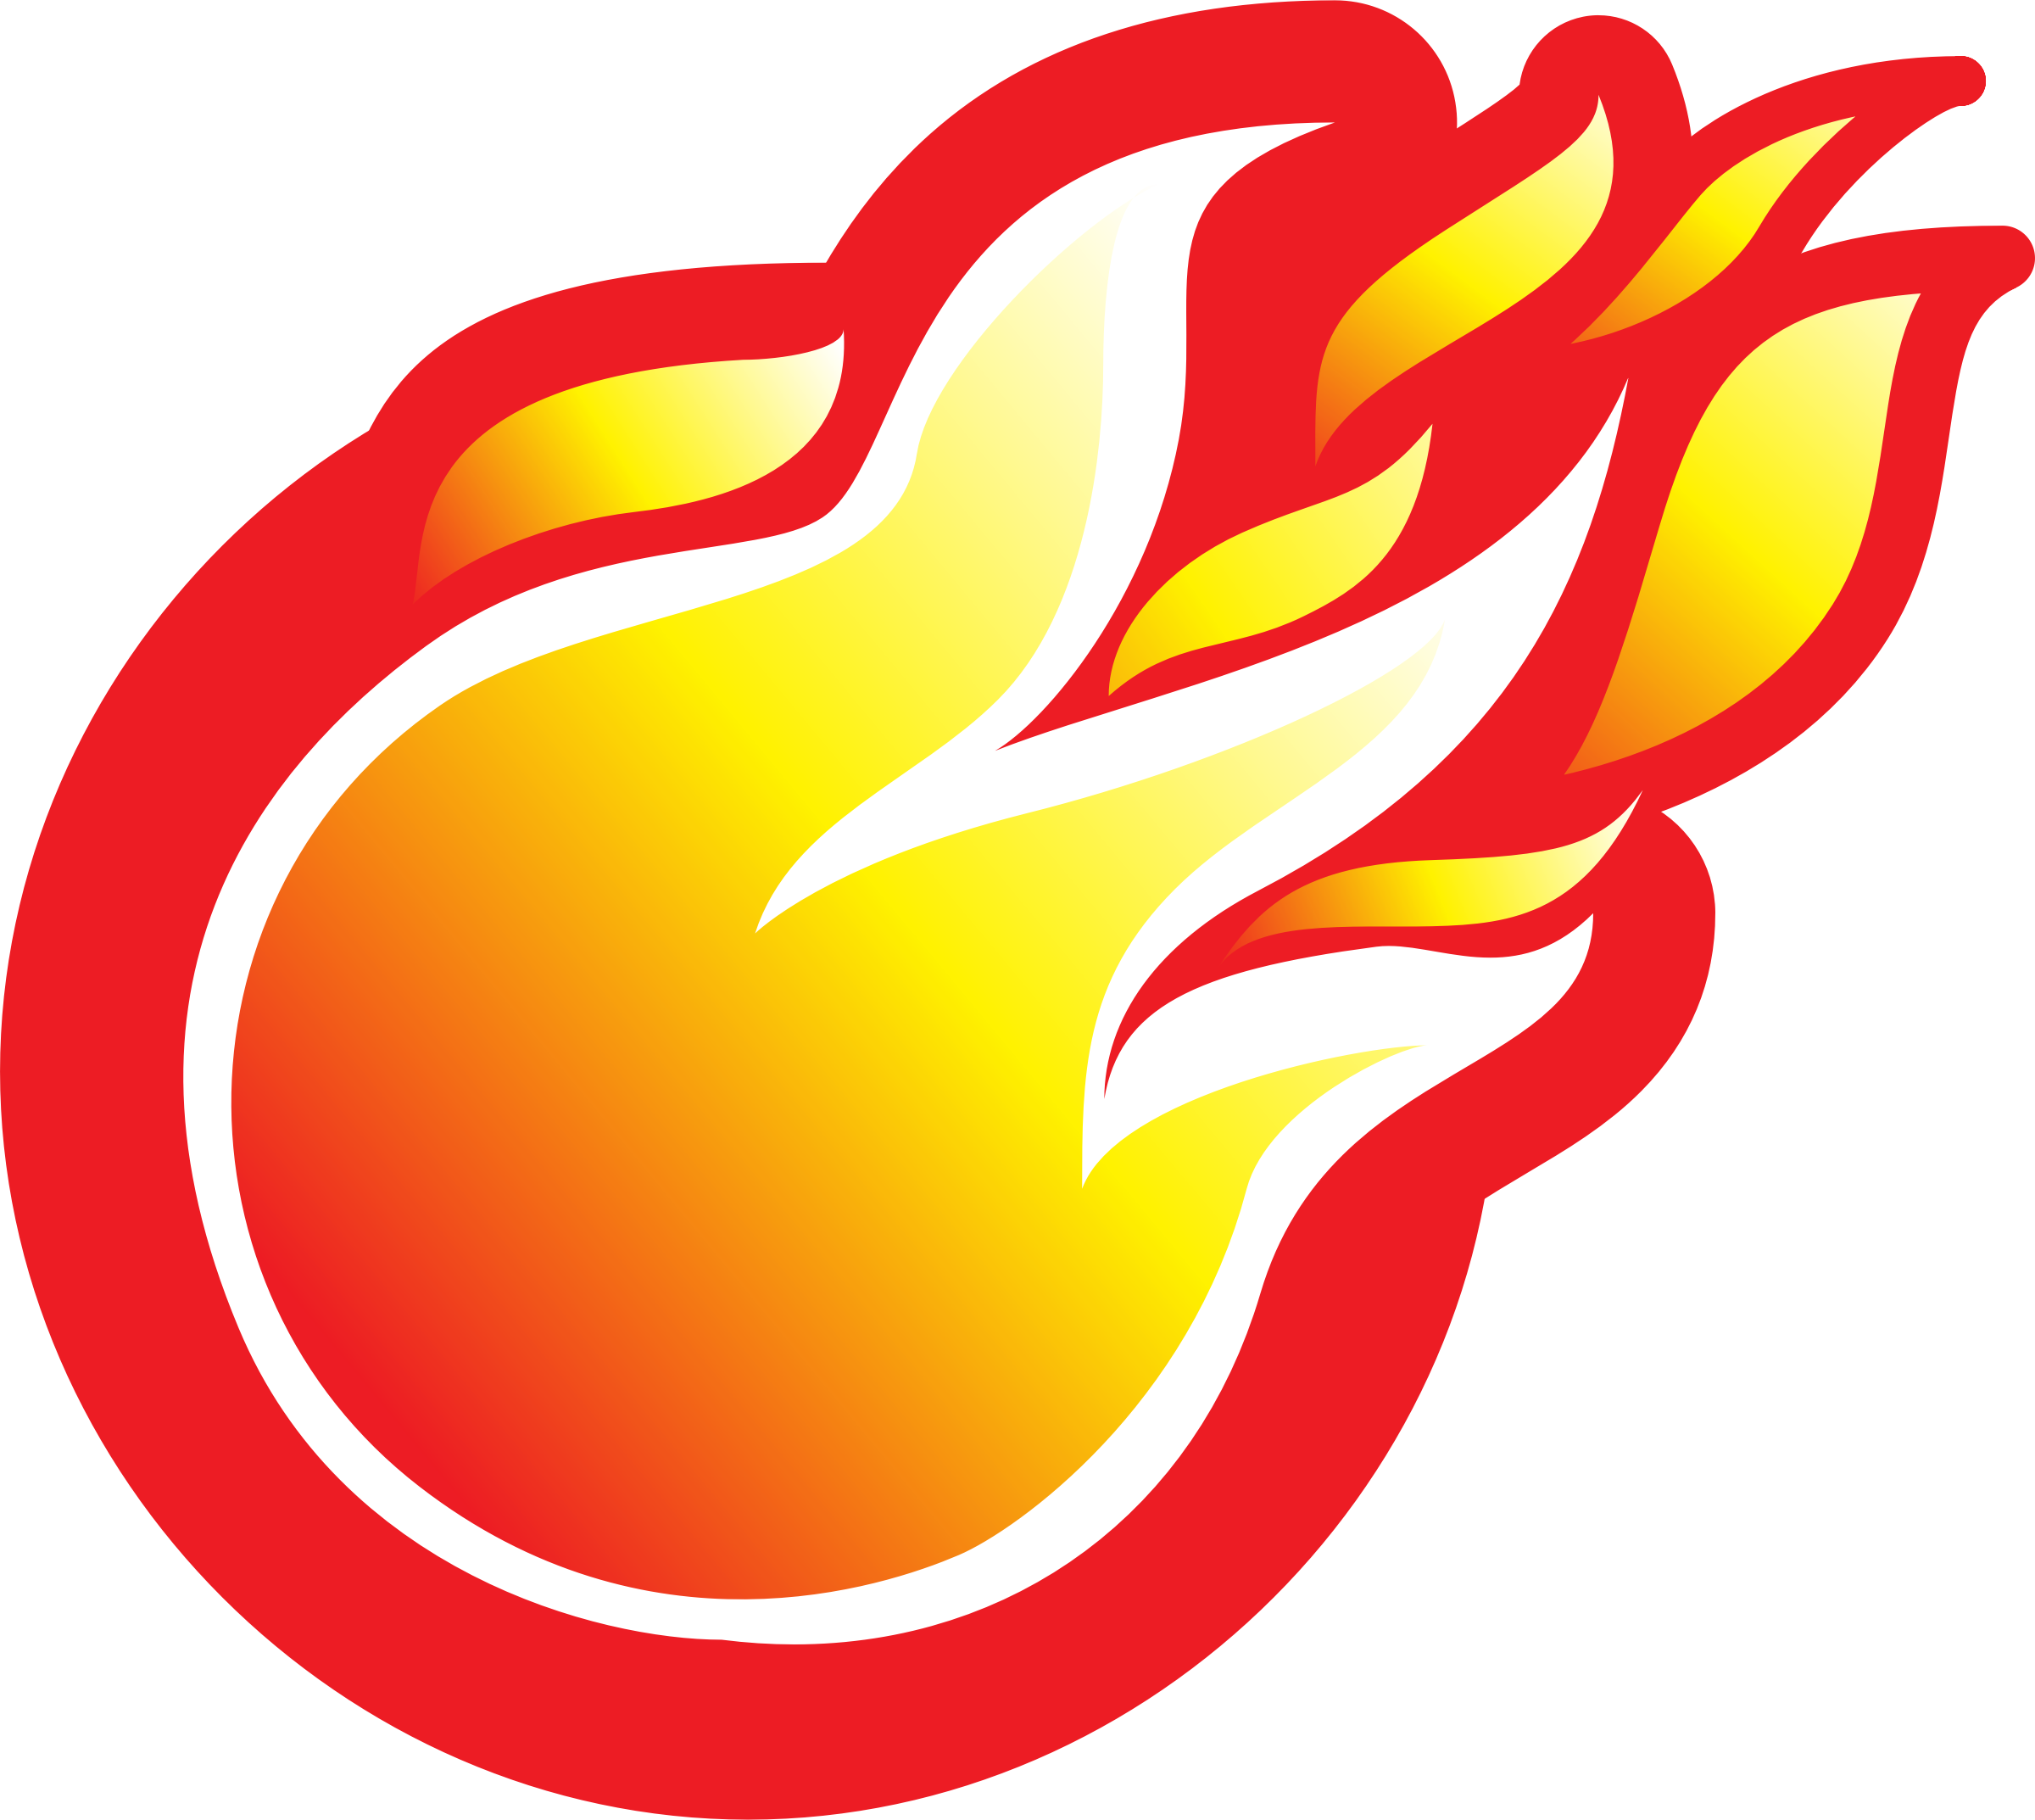 Fire Ball Icon by georges-dahdouh